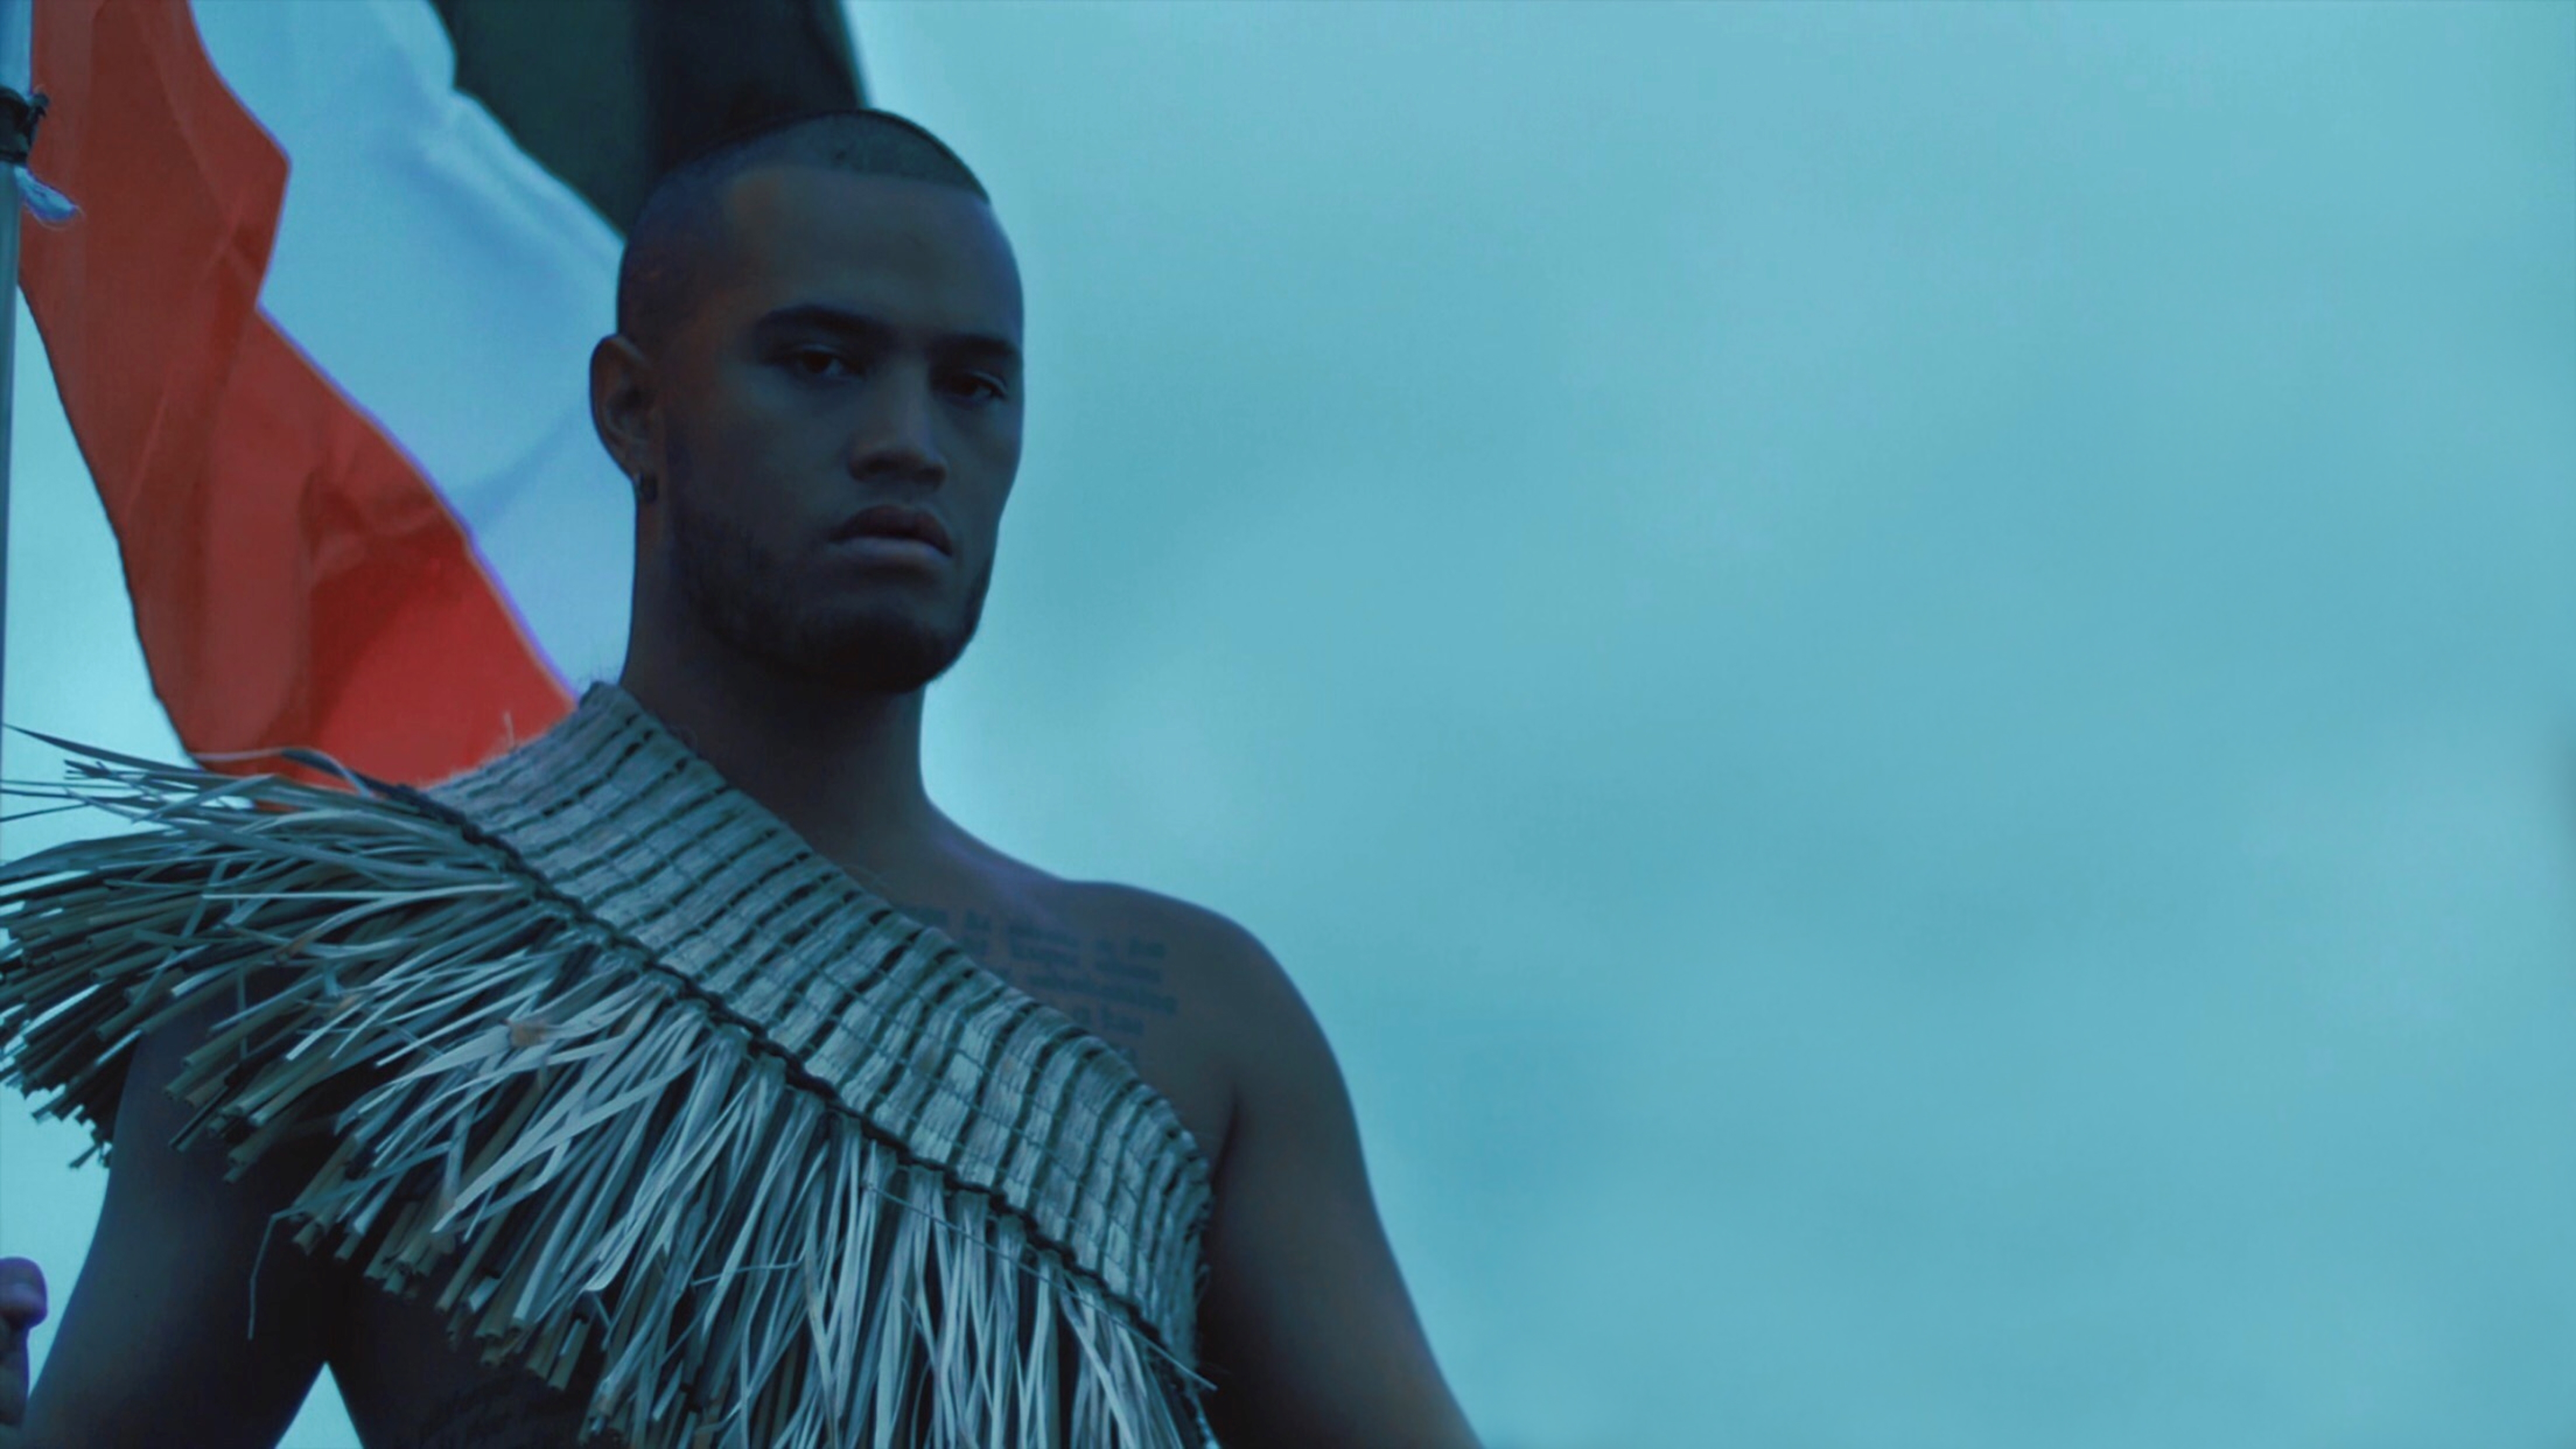 STAN WALKER THE 'NEW TAKEOVER' IS UPON US